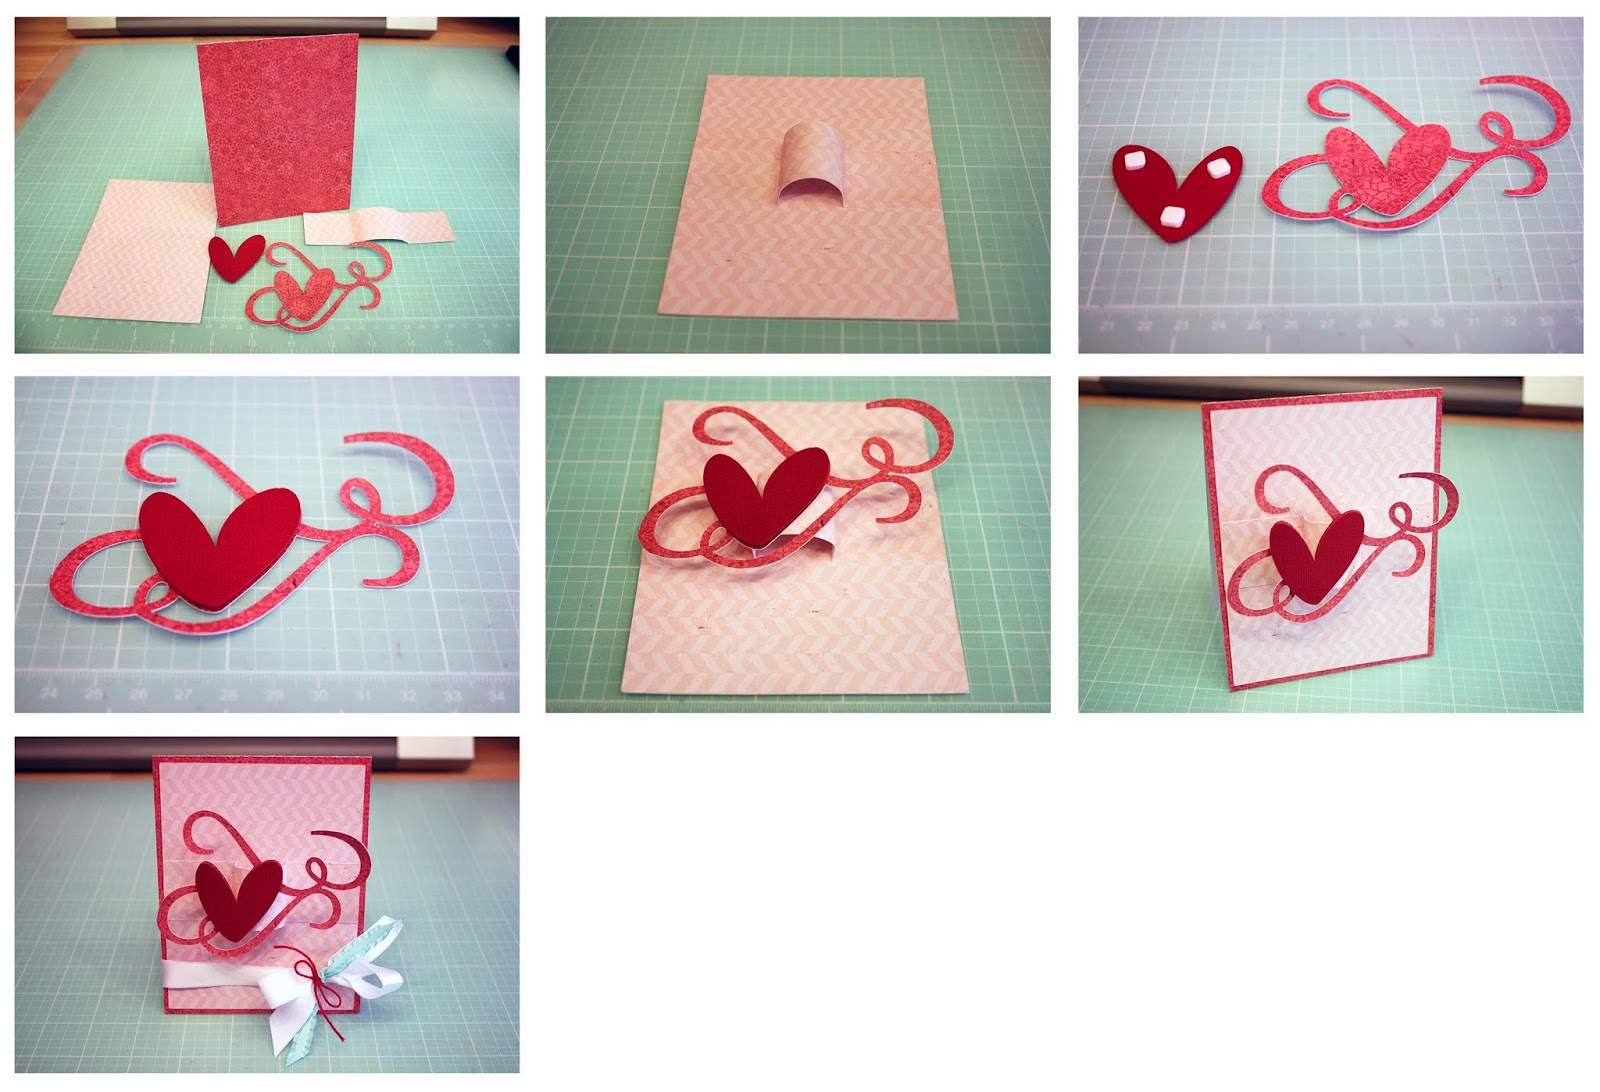 Bits of Paper A2 Swirly Heart PopUp Card – How to Make Pop Up Valentine Cards